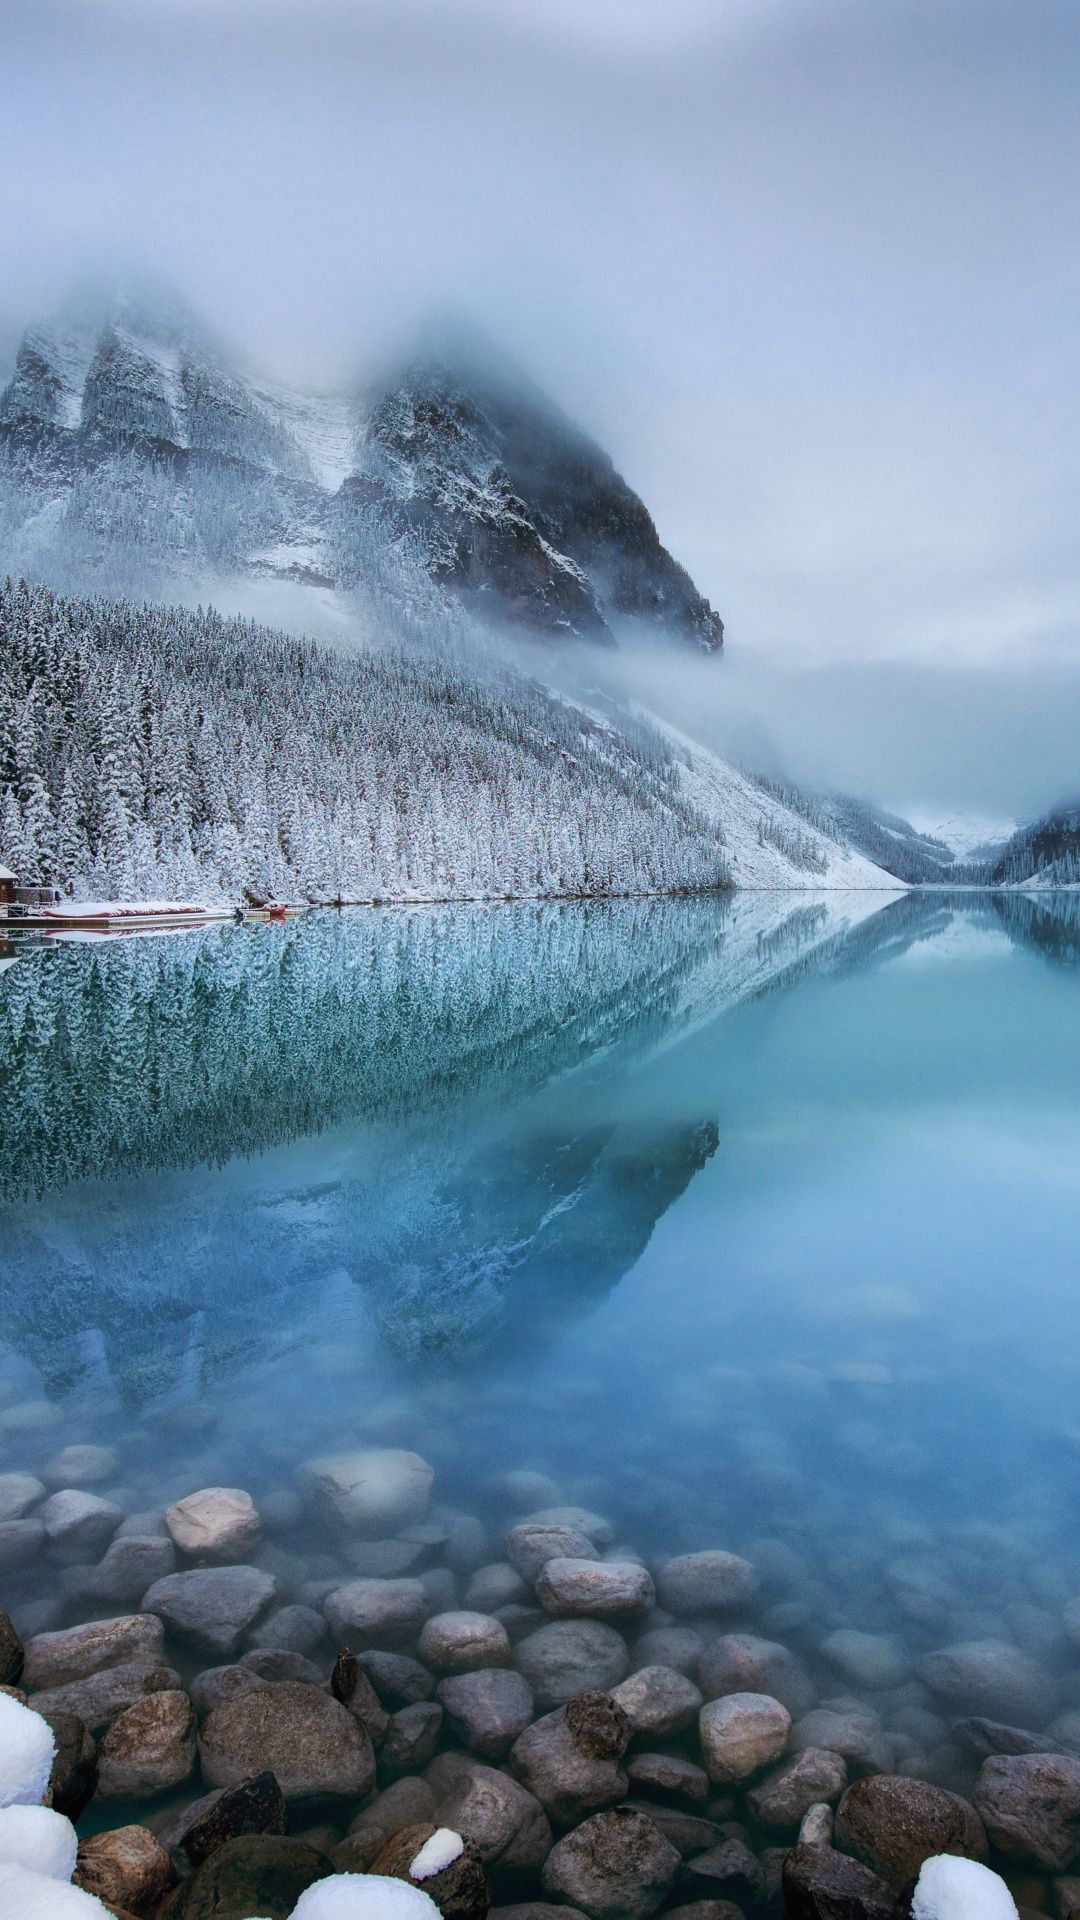 Lake Louise Rocks Forest Nature Mountains Clouds Canada 1080x1920 Wallpaper Nature Aesthetic Scenery Landscape Hd wallpaper lake ice mountains valley